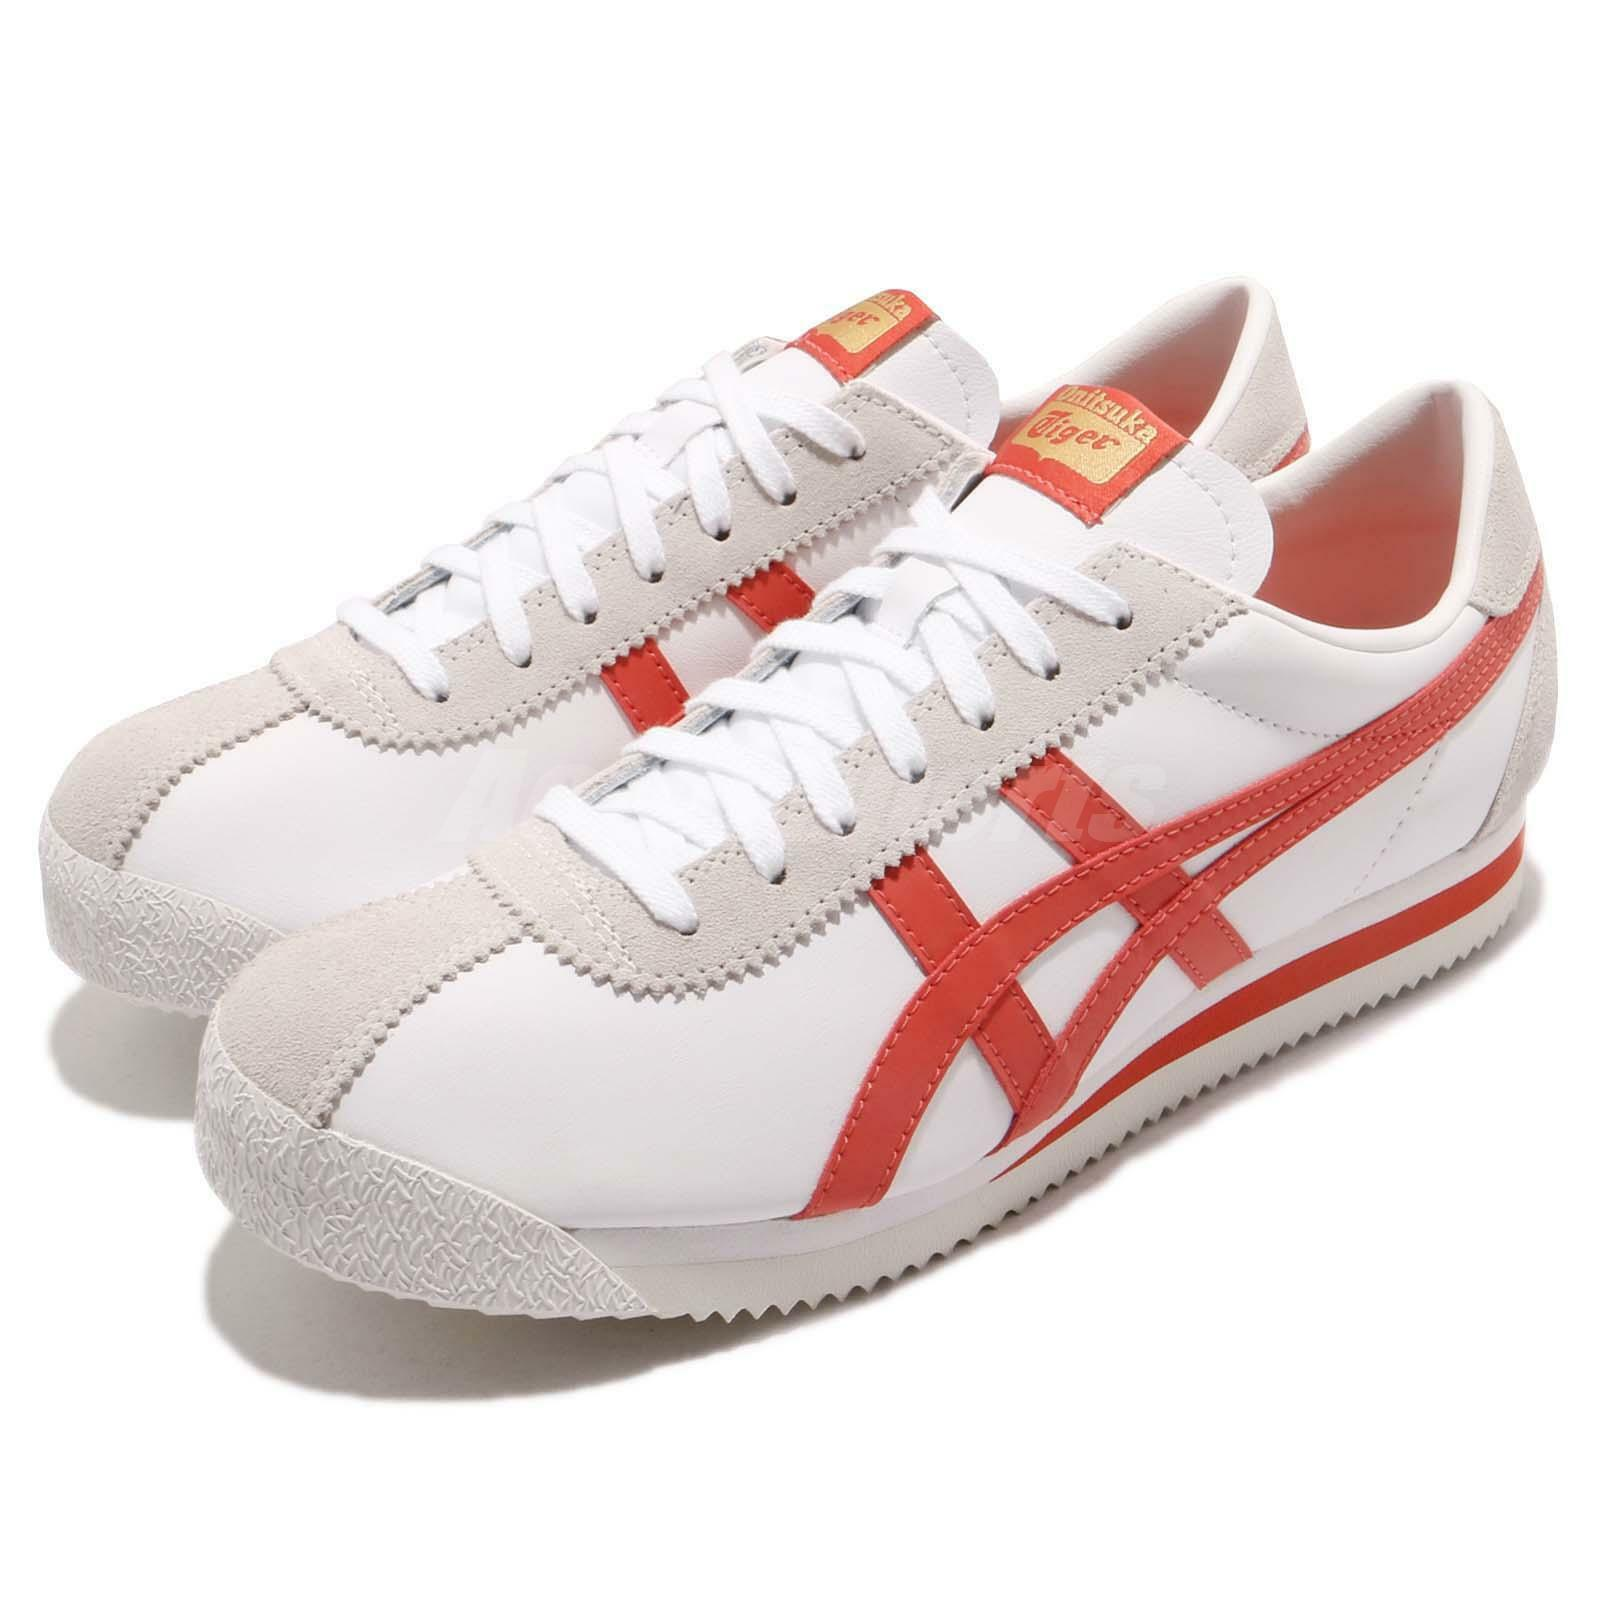 Asics Onitsuka Tiger Corsair White Paprika Men Running Shoes Sneakers D7J4L-0122